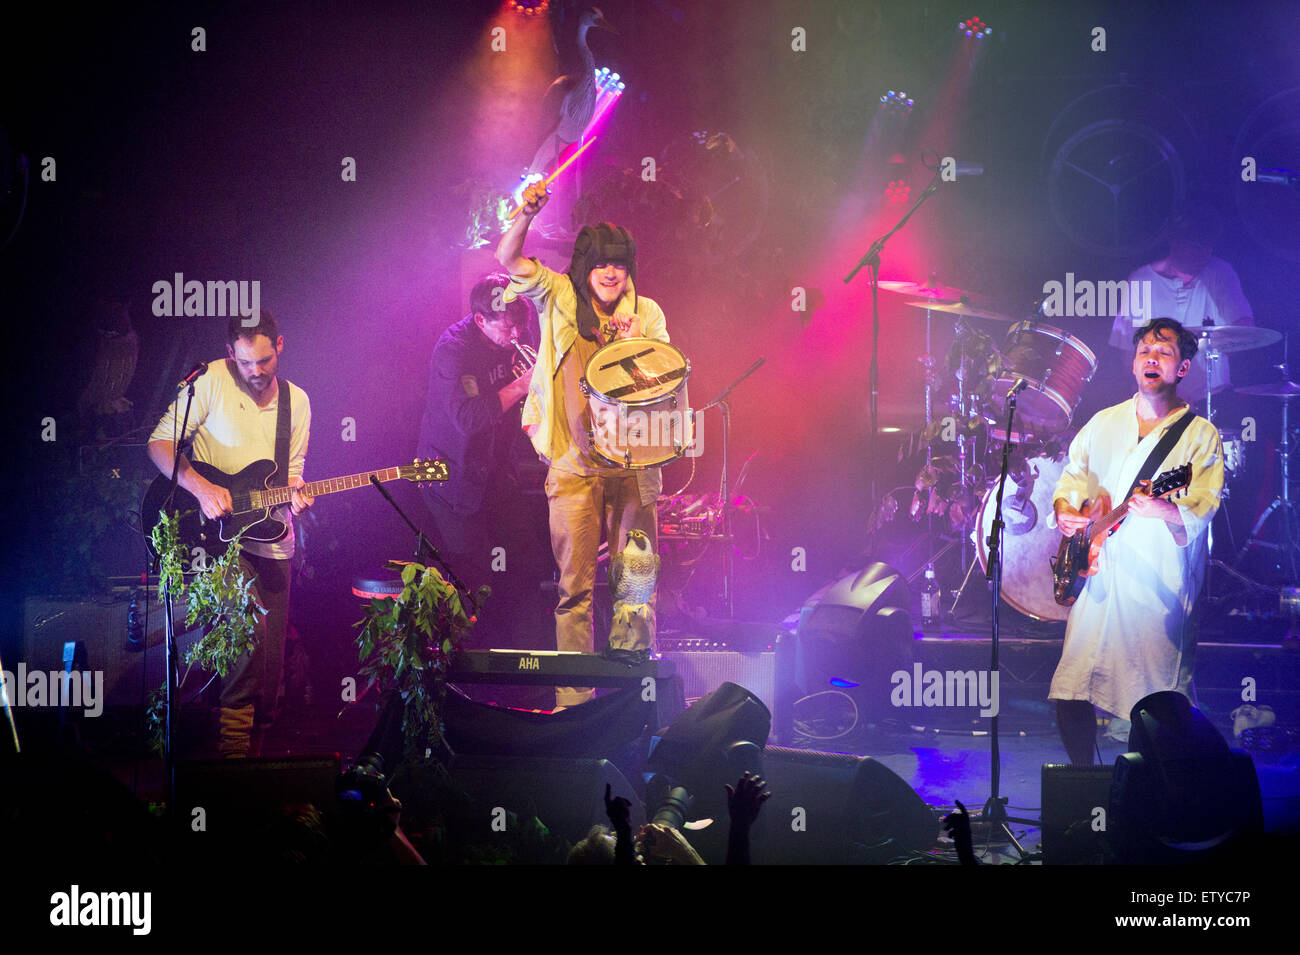 Rock band British Sea Power in concert at The Ritz, Manchester, UK, 11th June, 2015. Stock Photo